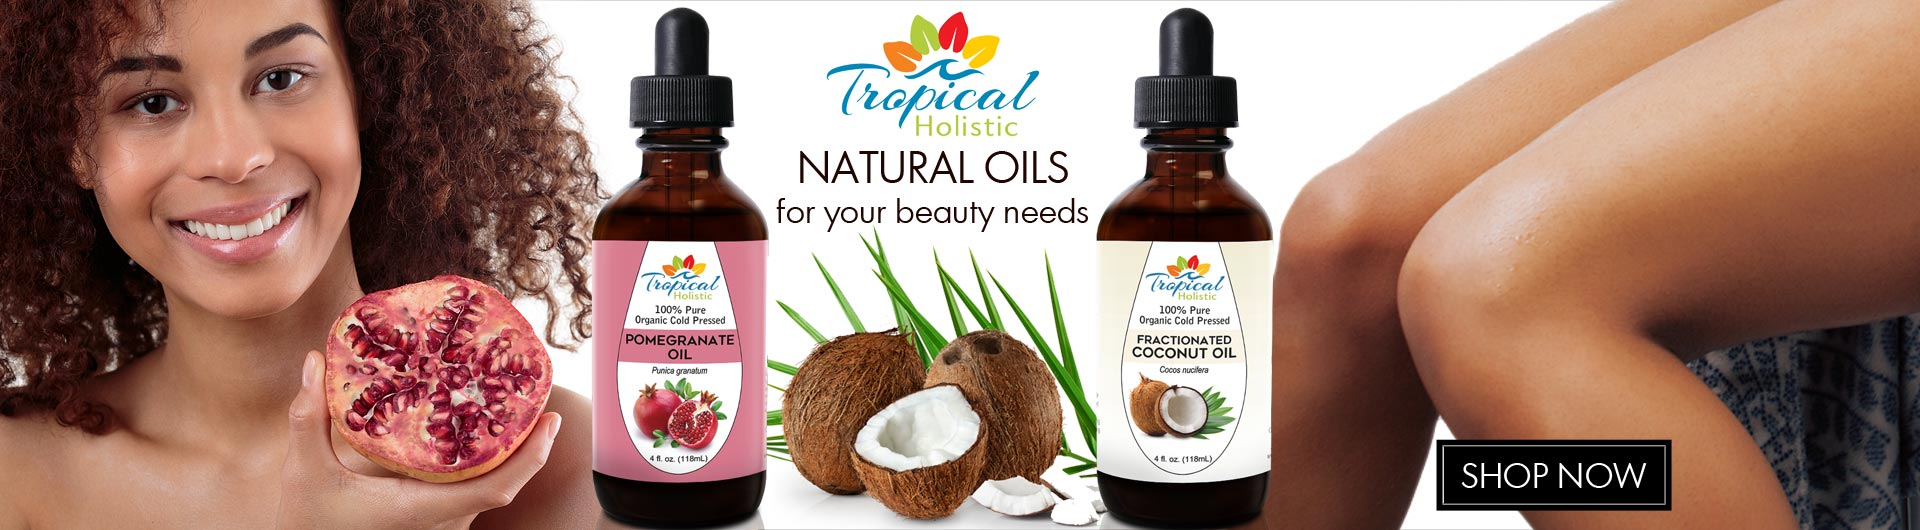 Natural Oils from Tropical Holistic